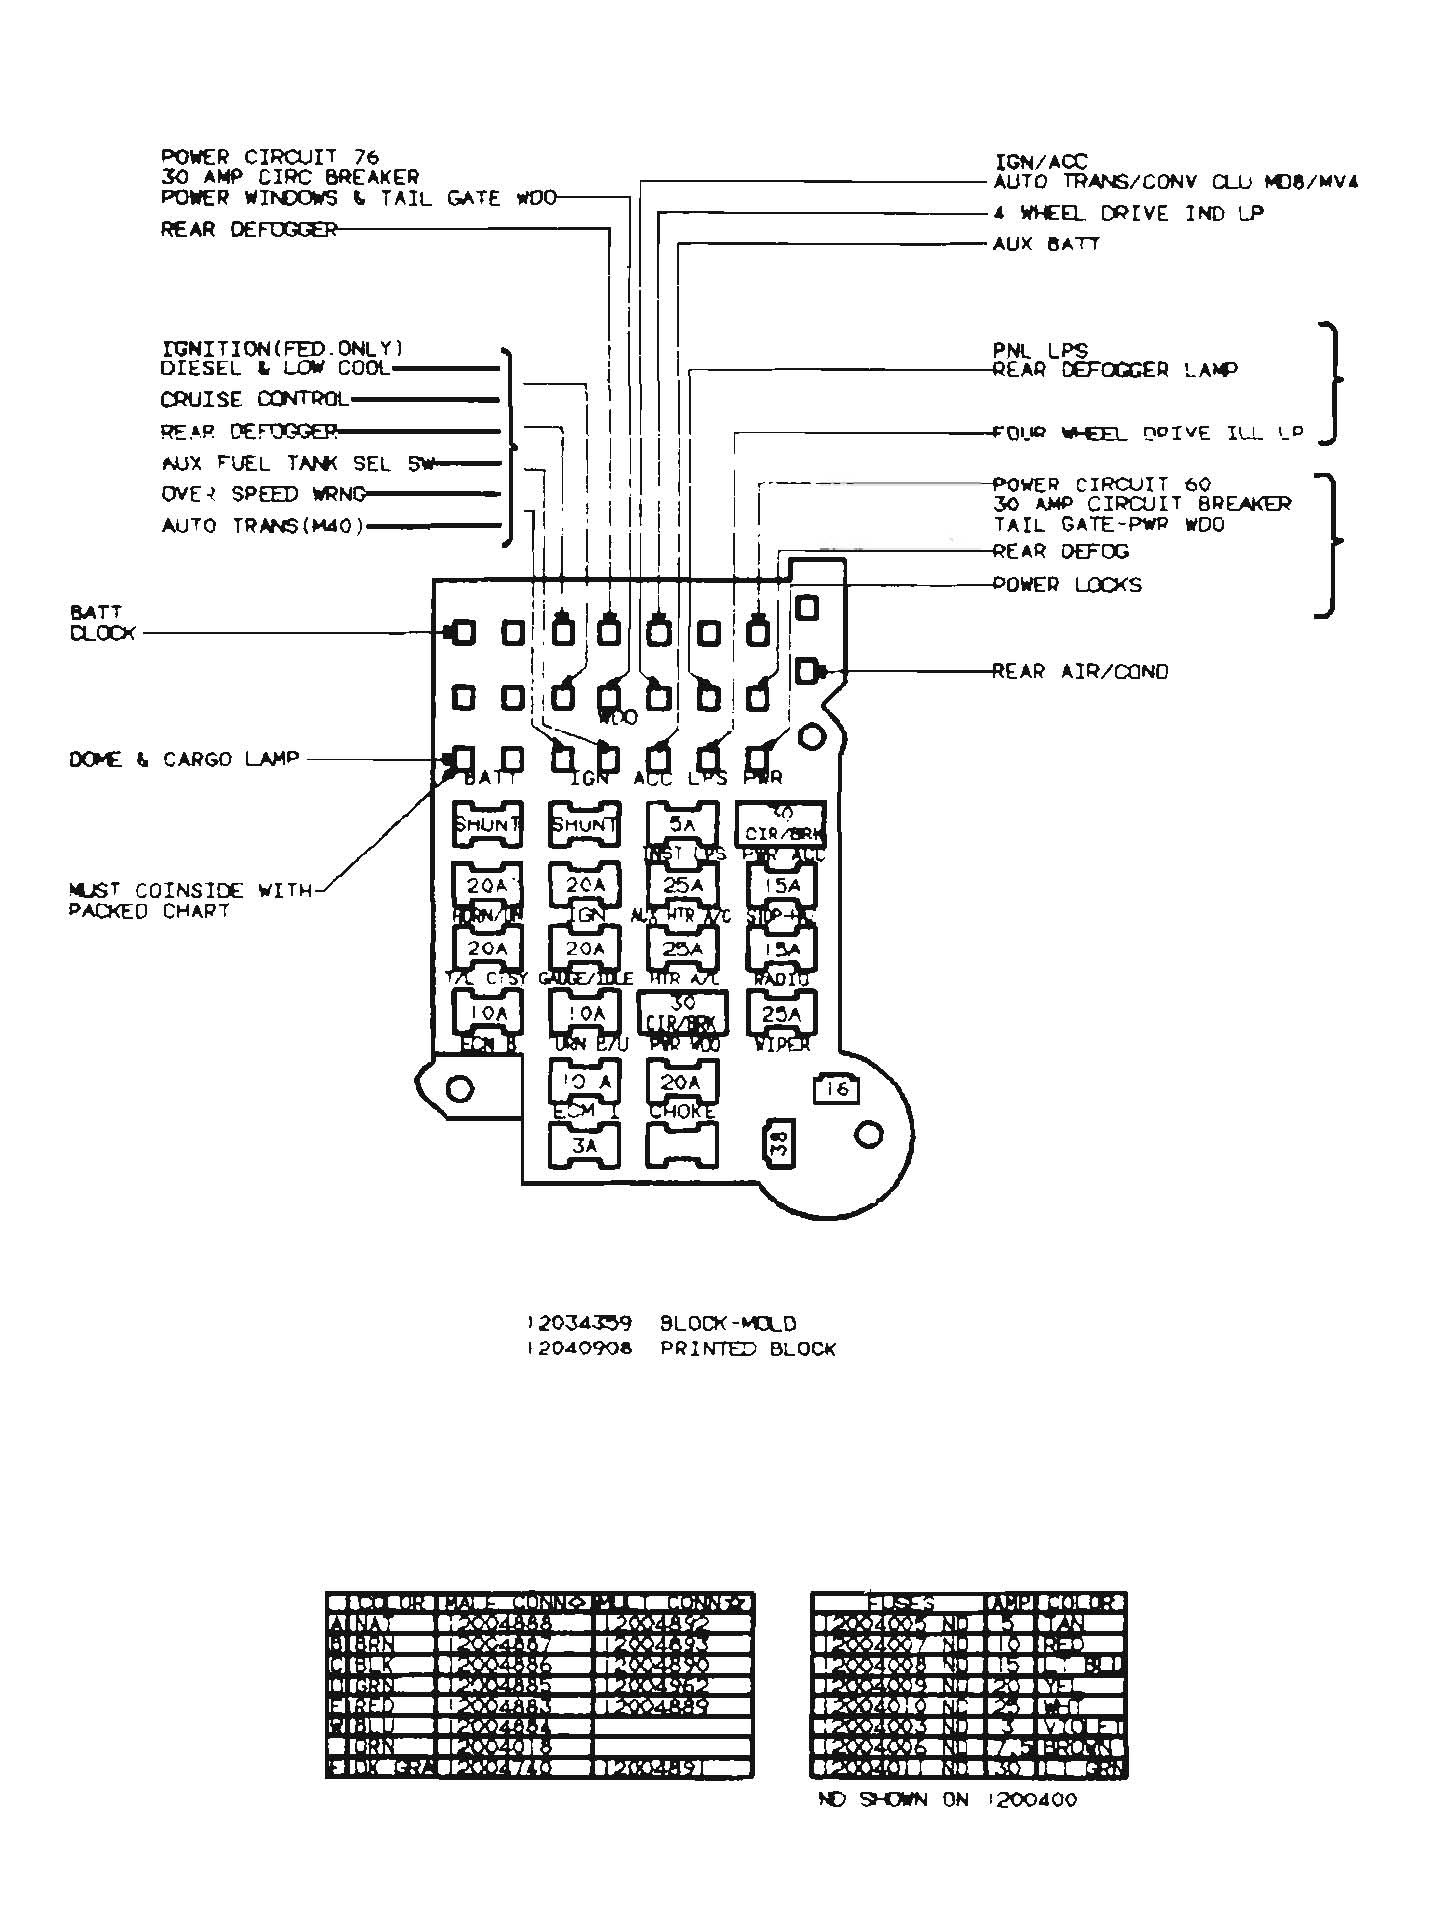 1990 Chevy Fuse Box - Wiring Diagram Detailed - 1990 Chevy Truck Wiring Diagram